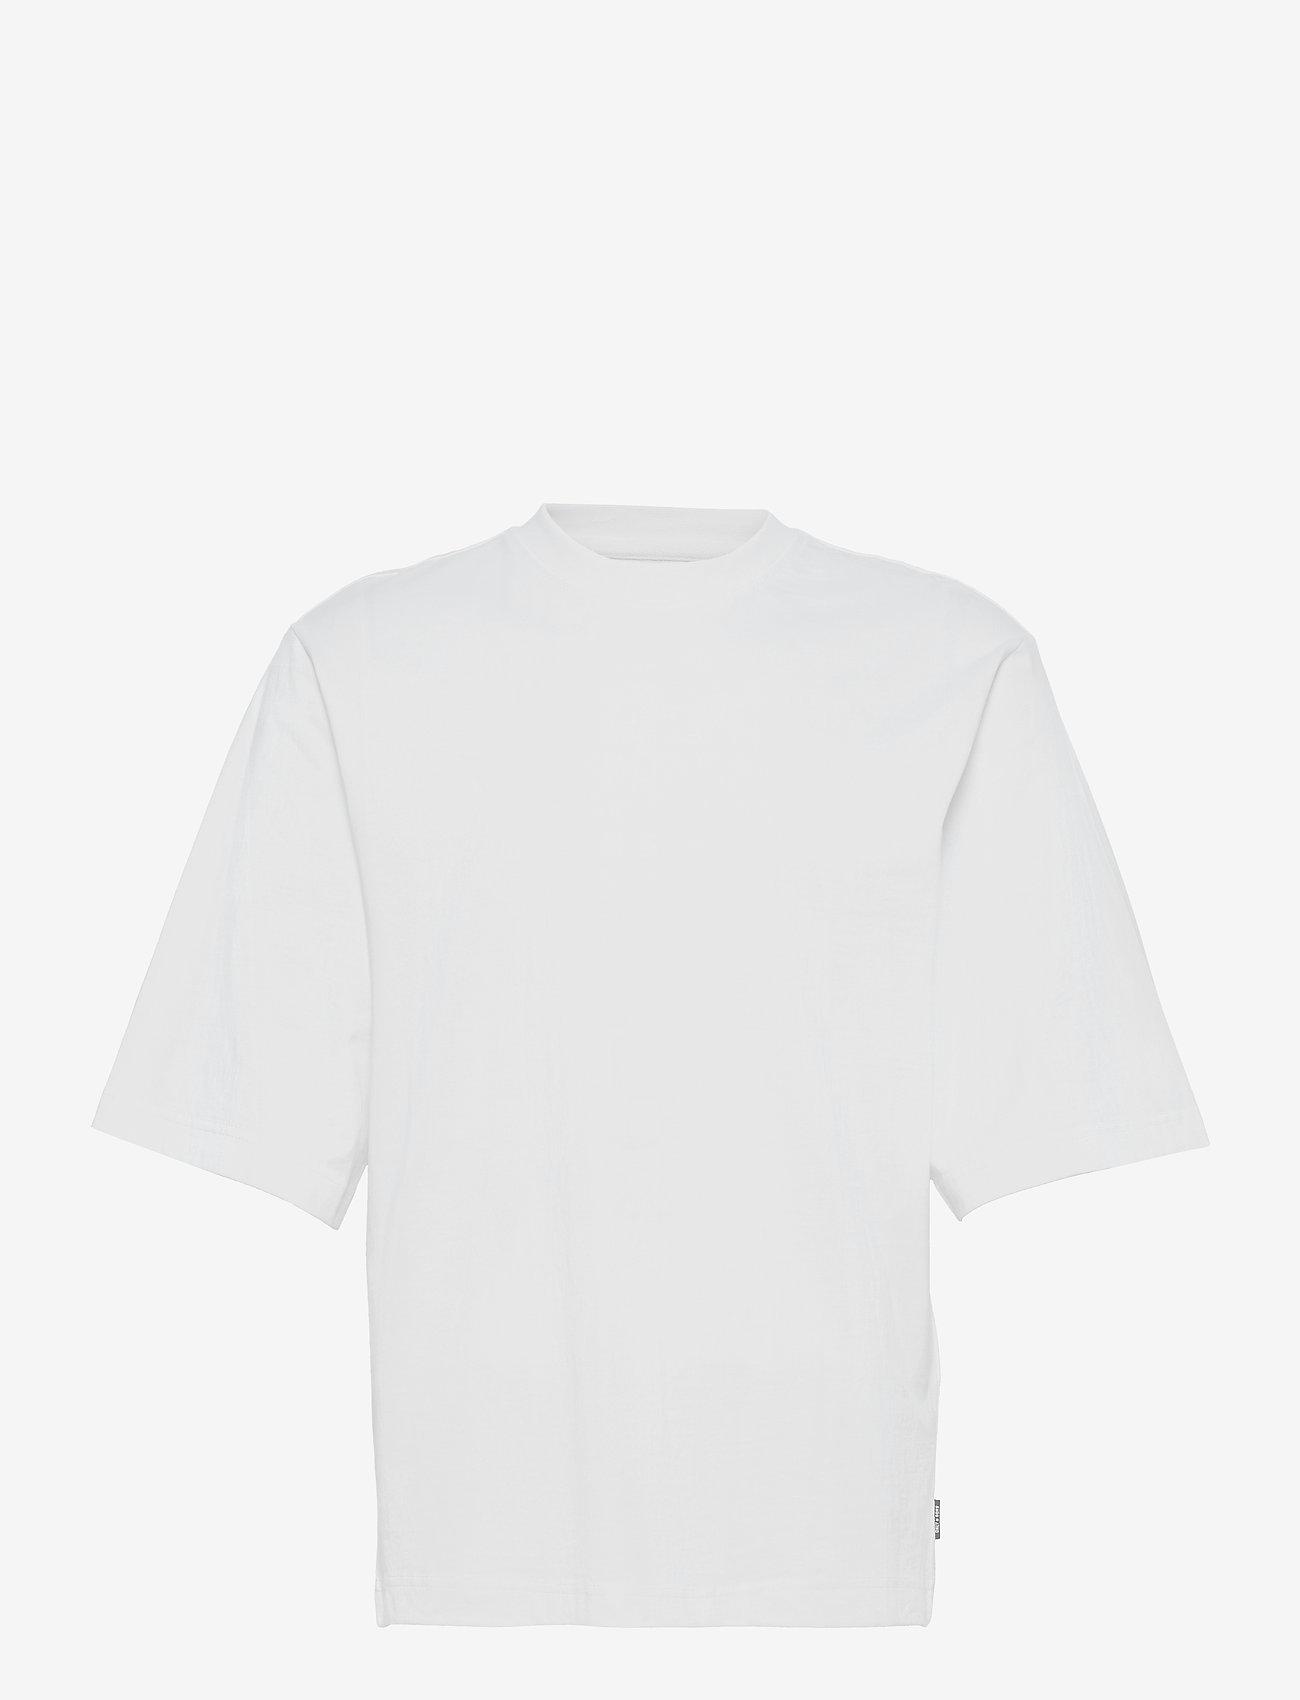 ONLY & SONS - ONSPECK OVS HALF SLEEVE TEE - t-shirts basiques - bright white - 0